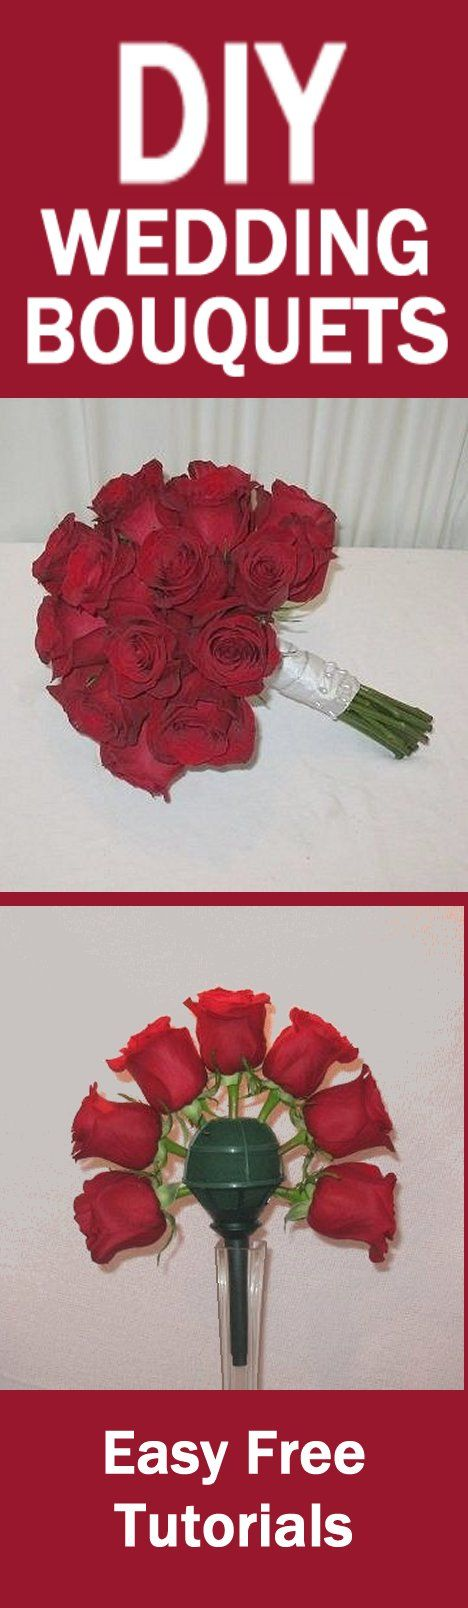 How To Make Bridal Bouquets Easy Wedding Flower Tutorials Learn Corsages Boutonnieres Reception Centerpieces And Church